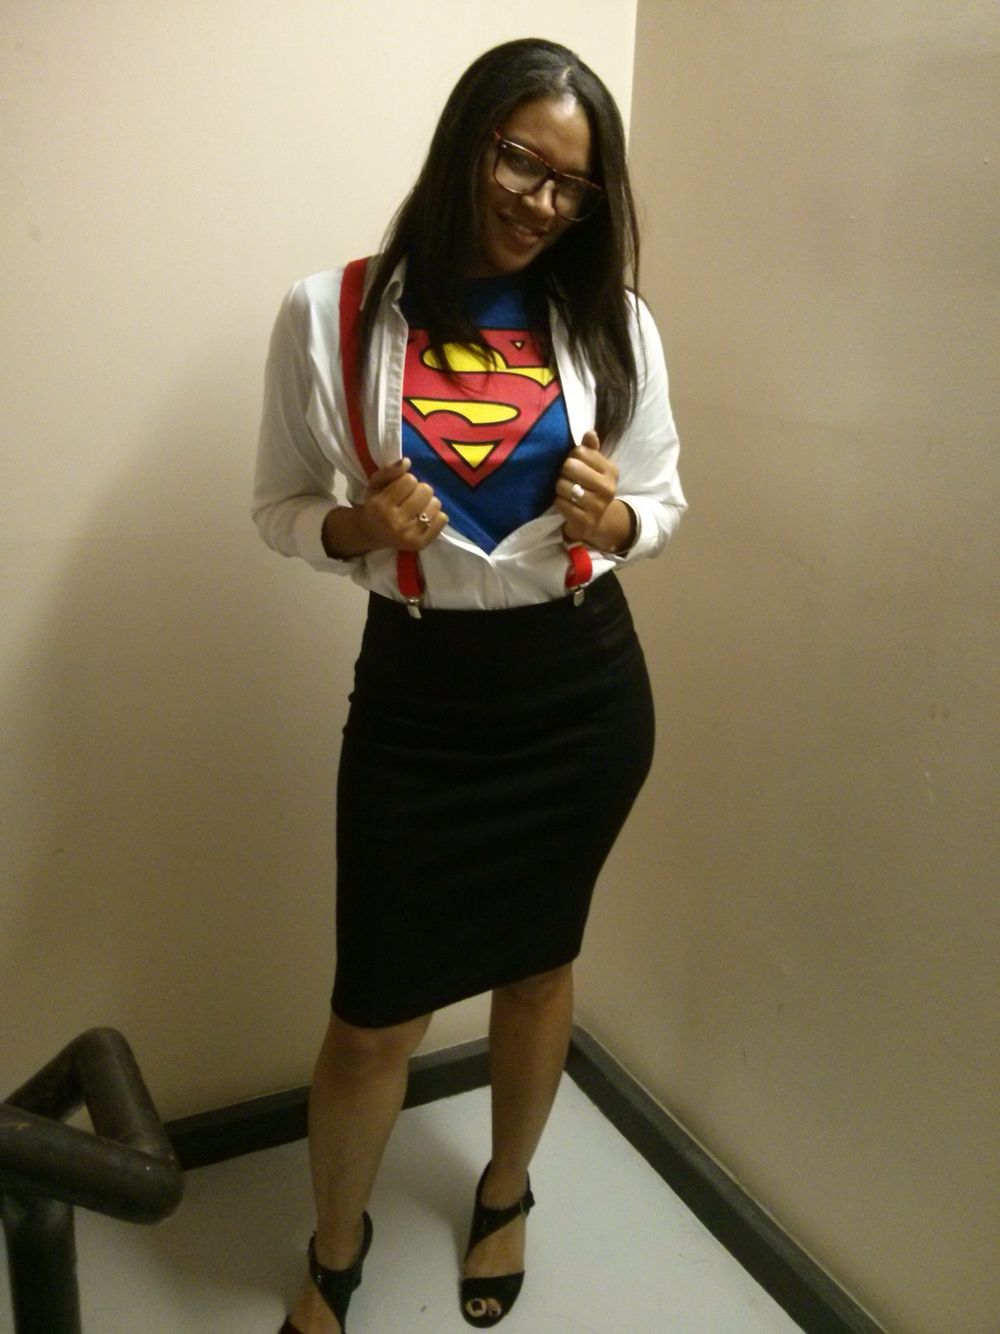 3 Easy Diy Storage Ideas For Small Kitchen: Super Woman Incognito. Easy Halloween Costume That Is Work